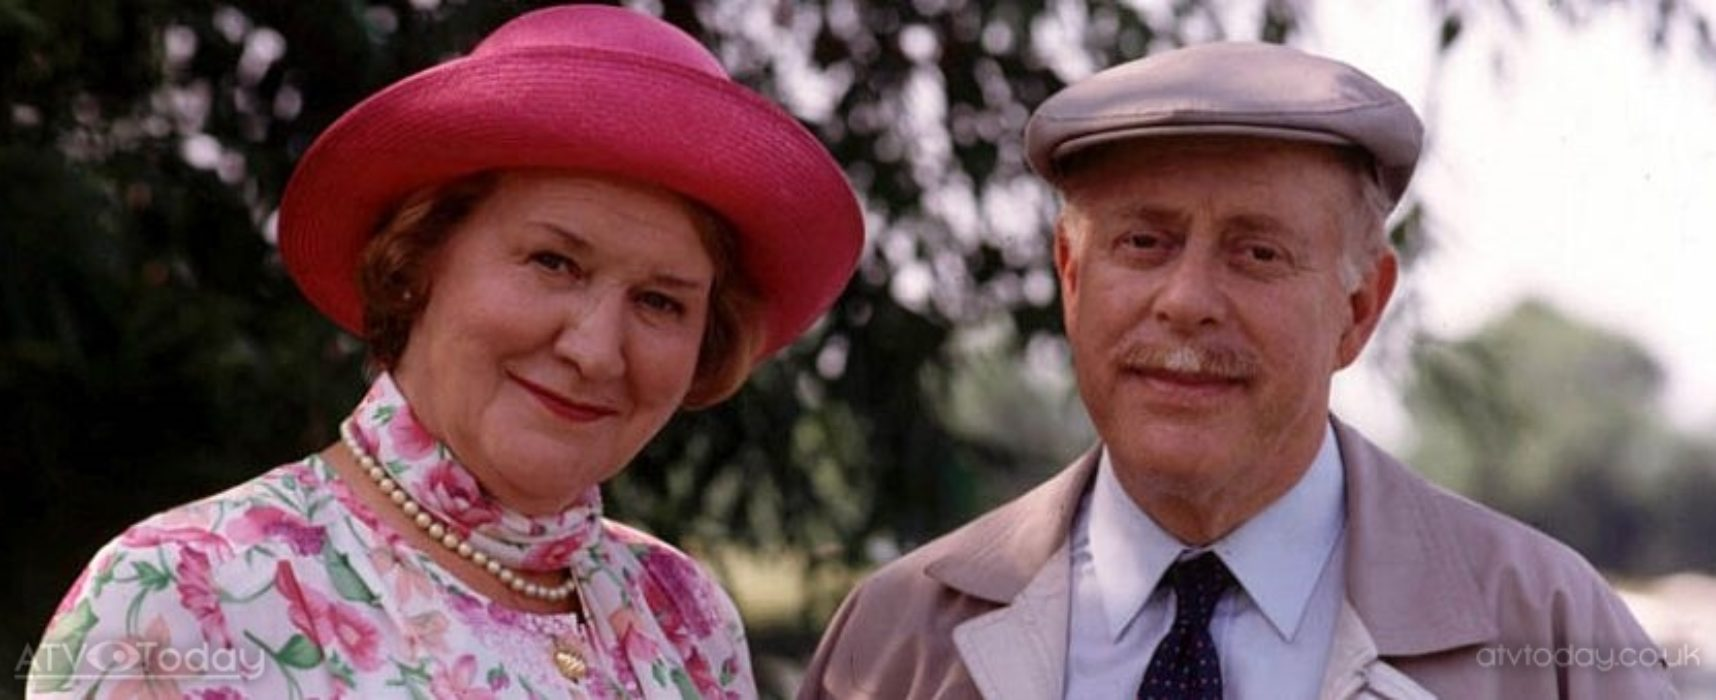 Keeping Up Appearances' Clive Swift dies